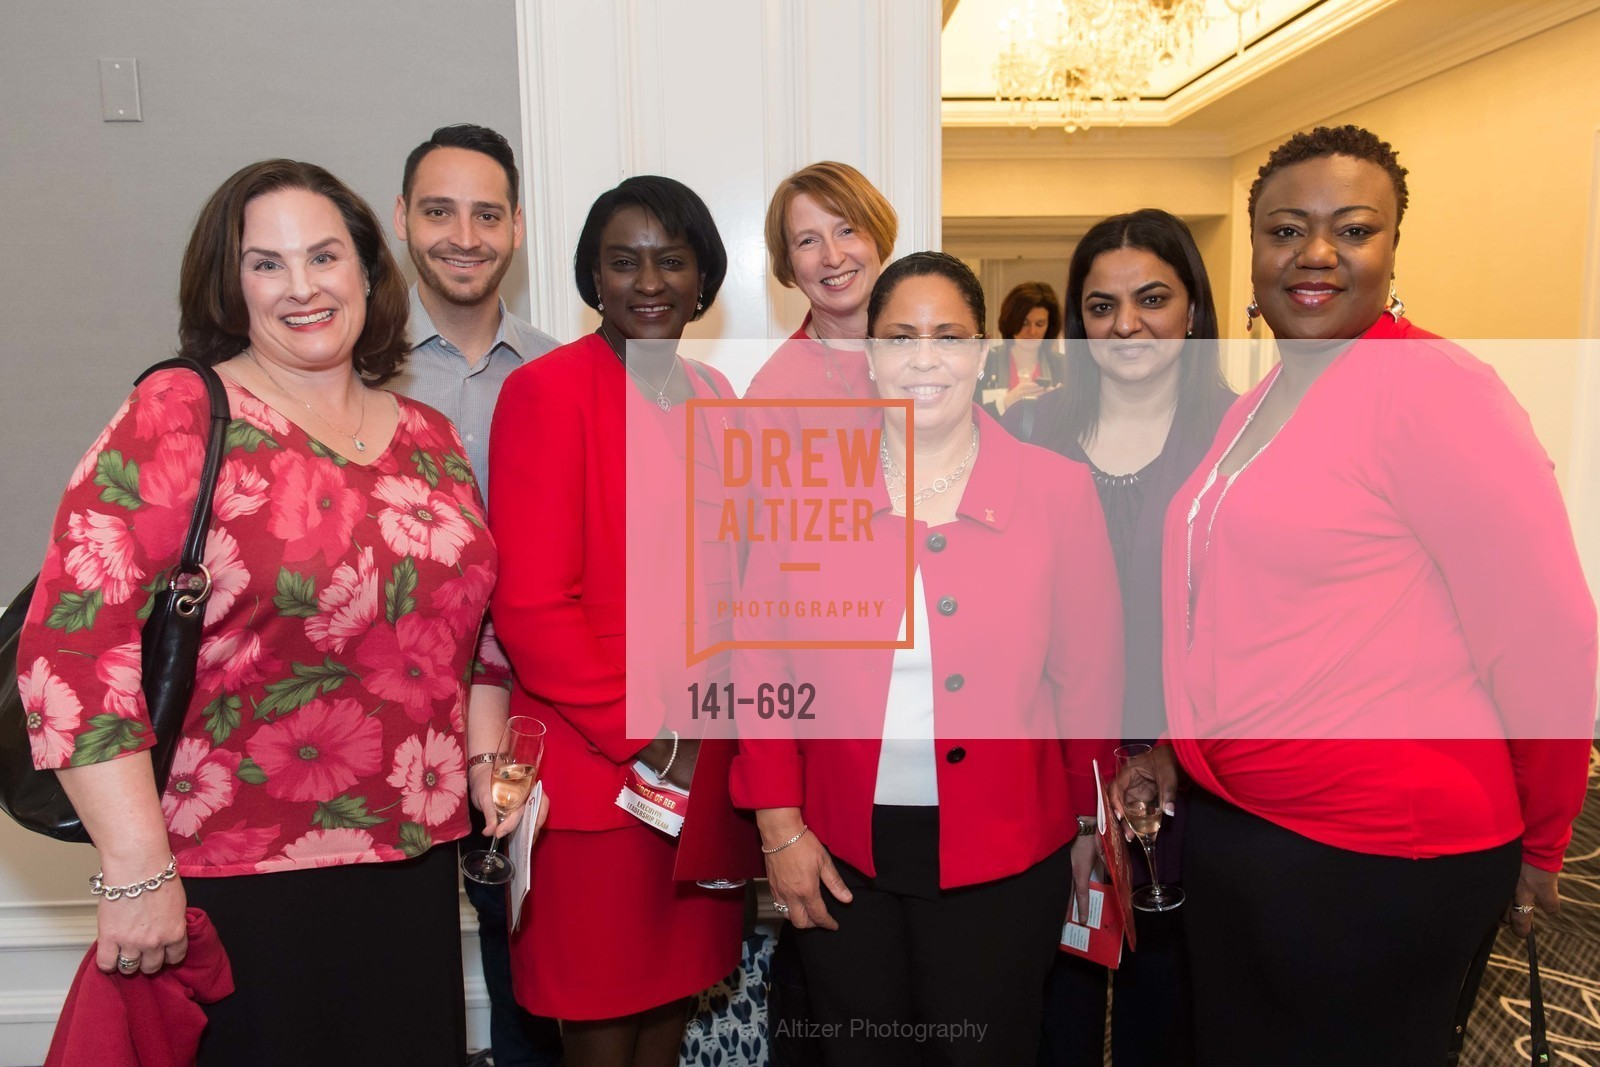 Jennifer Murphy, Clinton McGue, Melissa Welch, Marsha Scott, Libby Este, Malika Hasnani, Michelle Lewis, 2015 GoRed for Women Luncheon, US, May 2nd, 2015,Drew Altizer, Drew Altizer Photography, full-service agency, private events, San Francisco photographer, photographer california